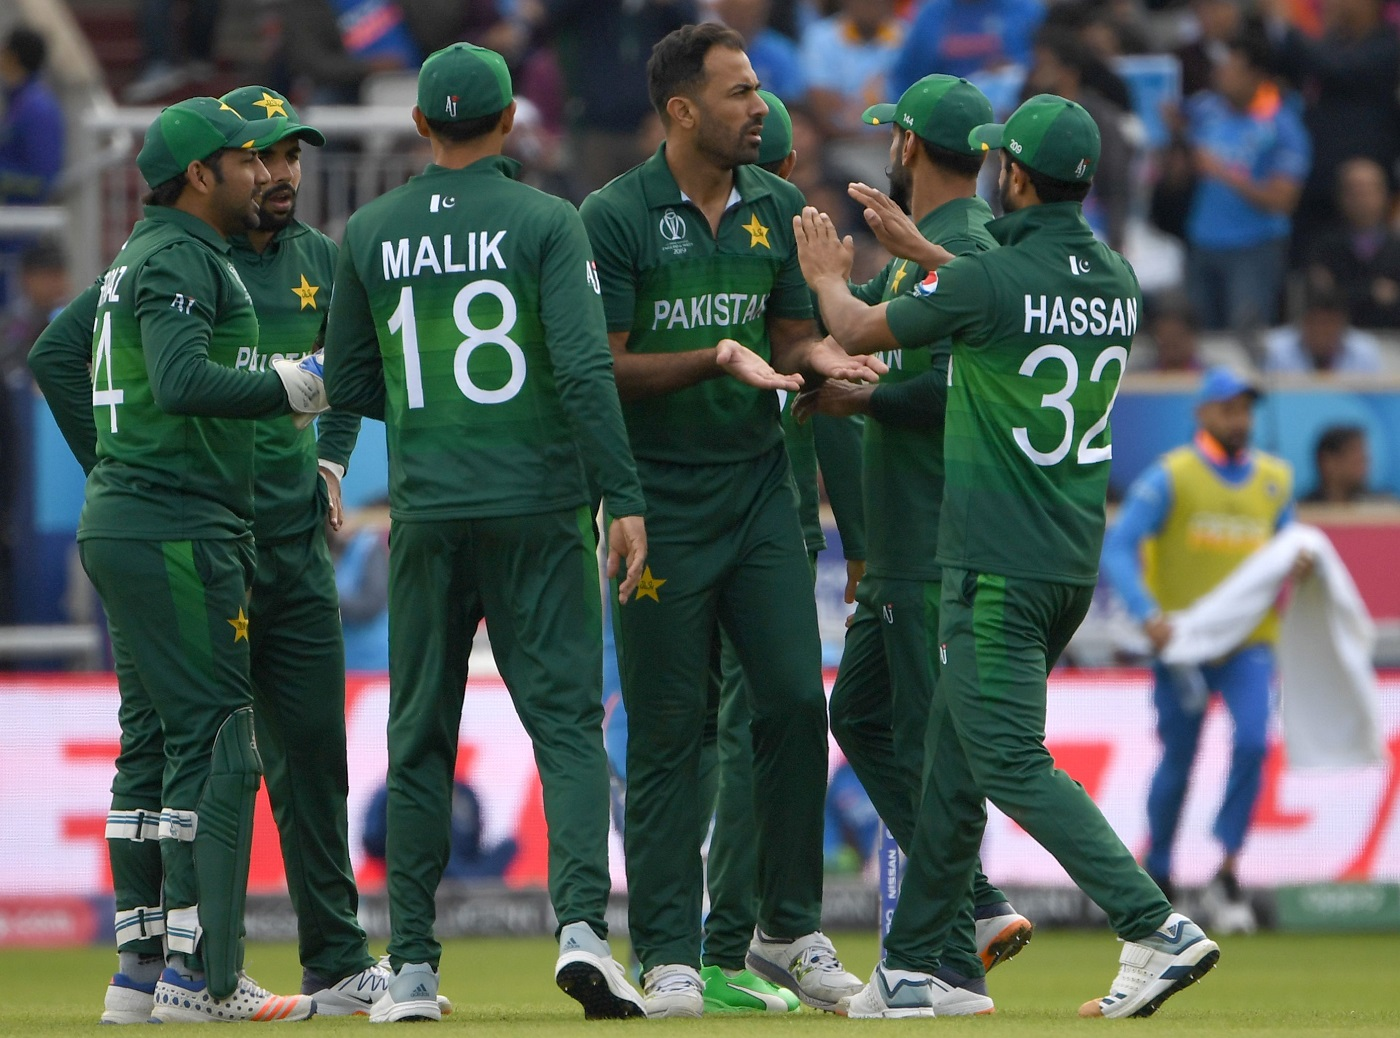 Pakistan vs South Africa - Highlights & Stats